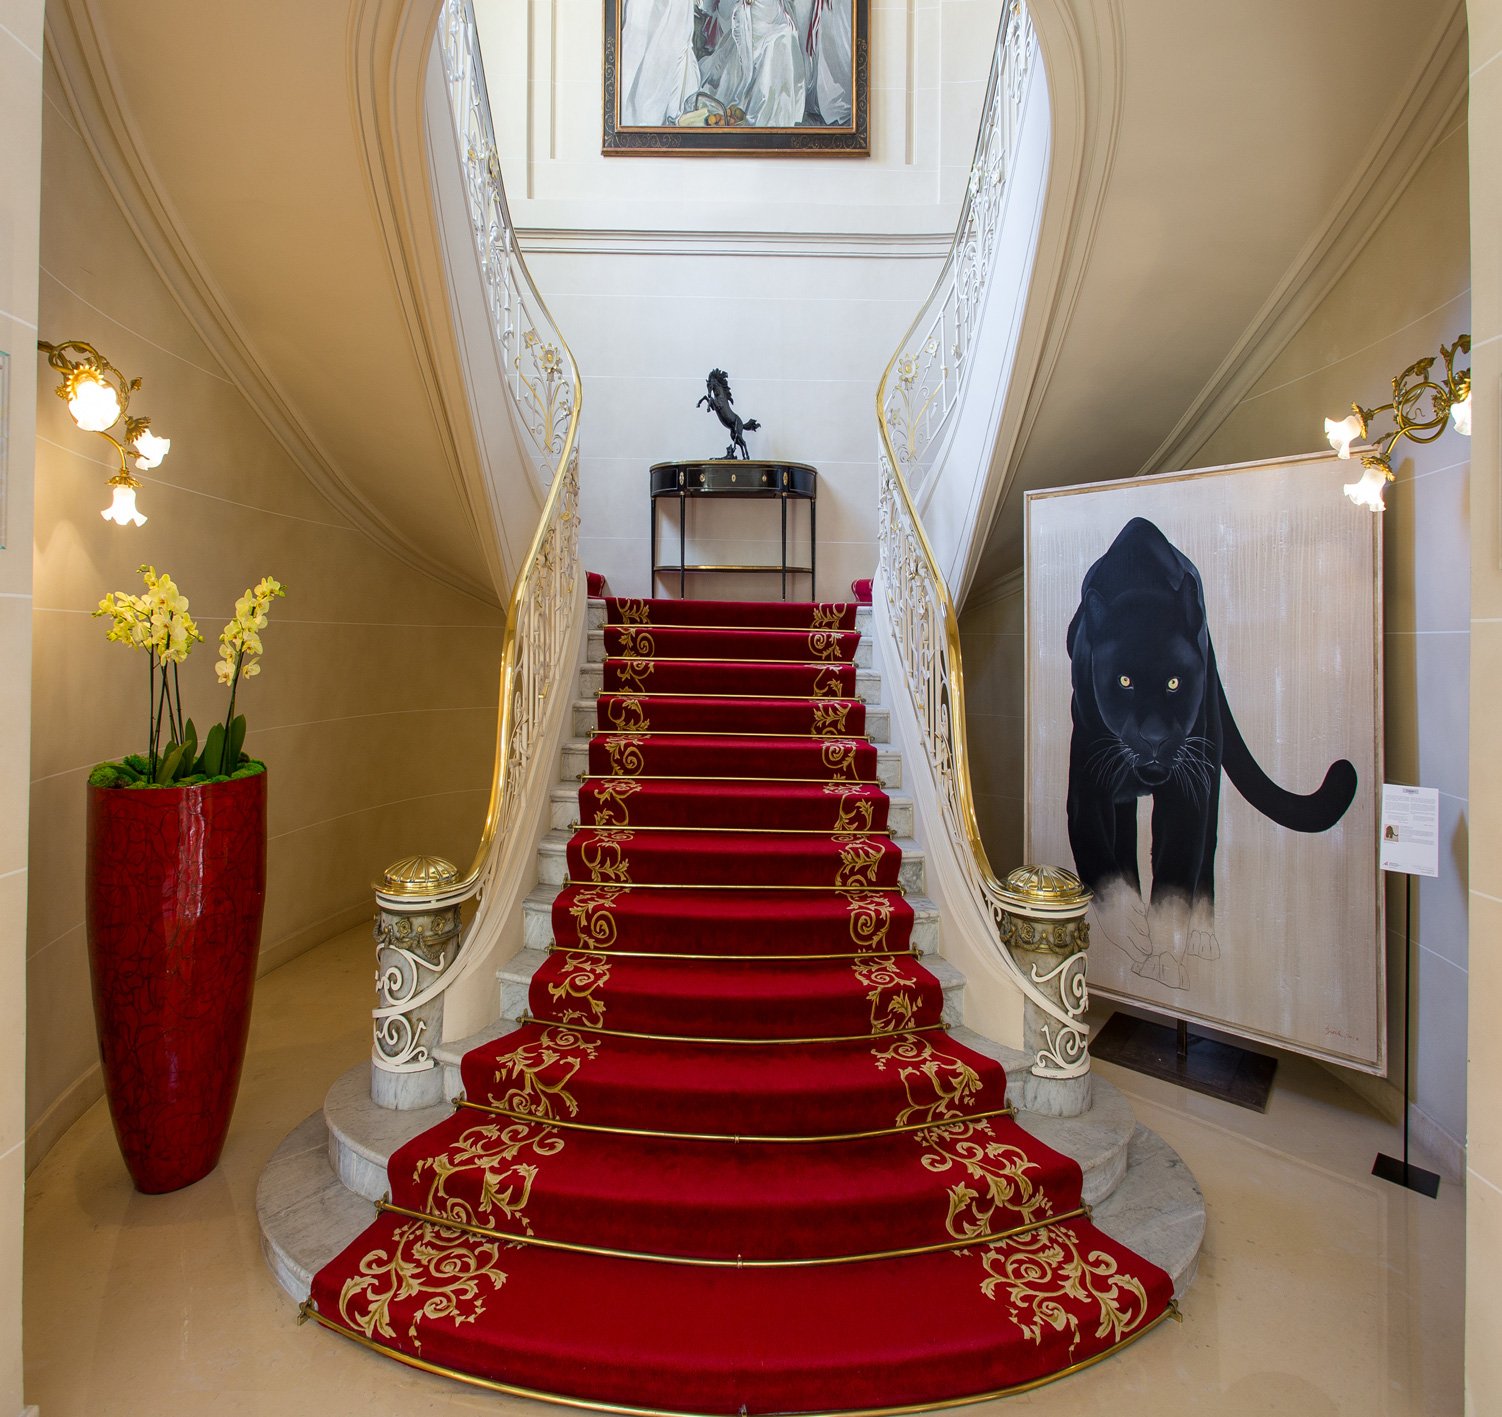 HOTEL HERMITAGE MONACO black-panther-java-leopard-threatened-endangered-extinction Thierry Bisch painter animals painting art decoration hotel design interior luxury nature biodiversity conservation